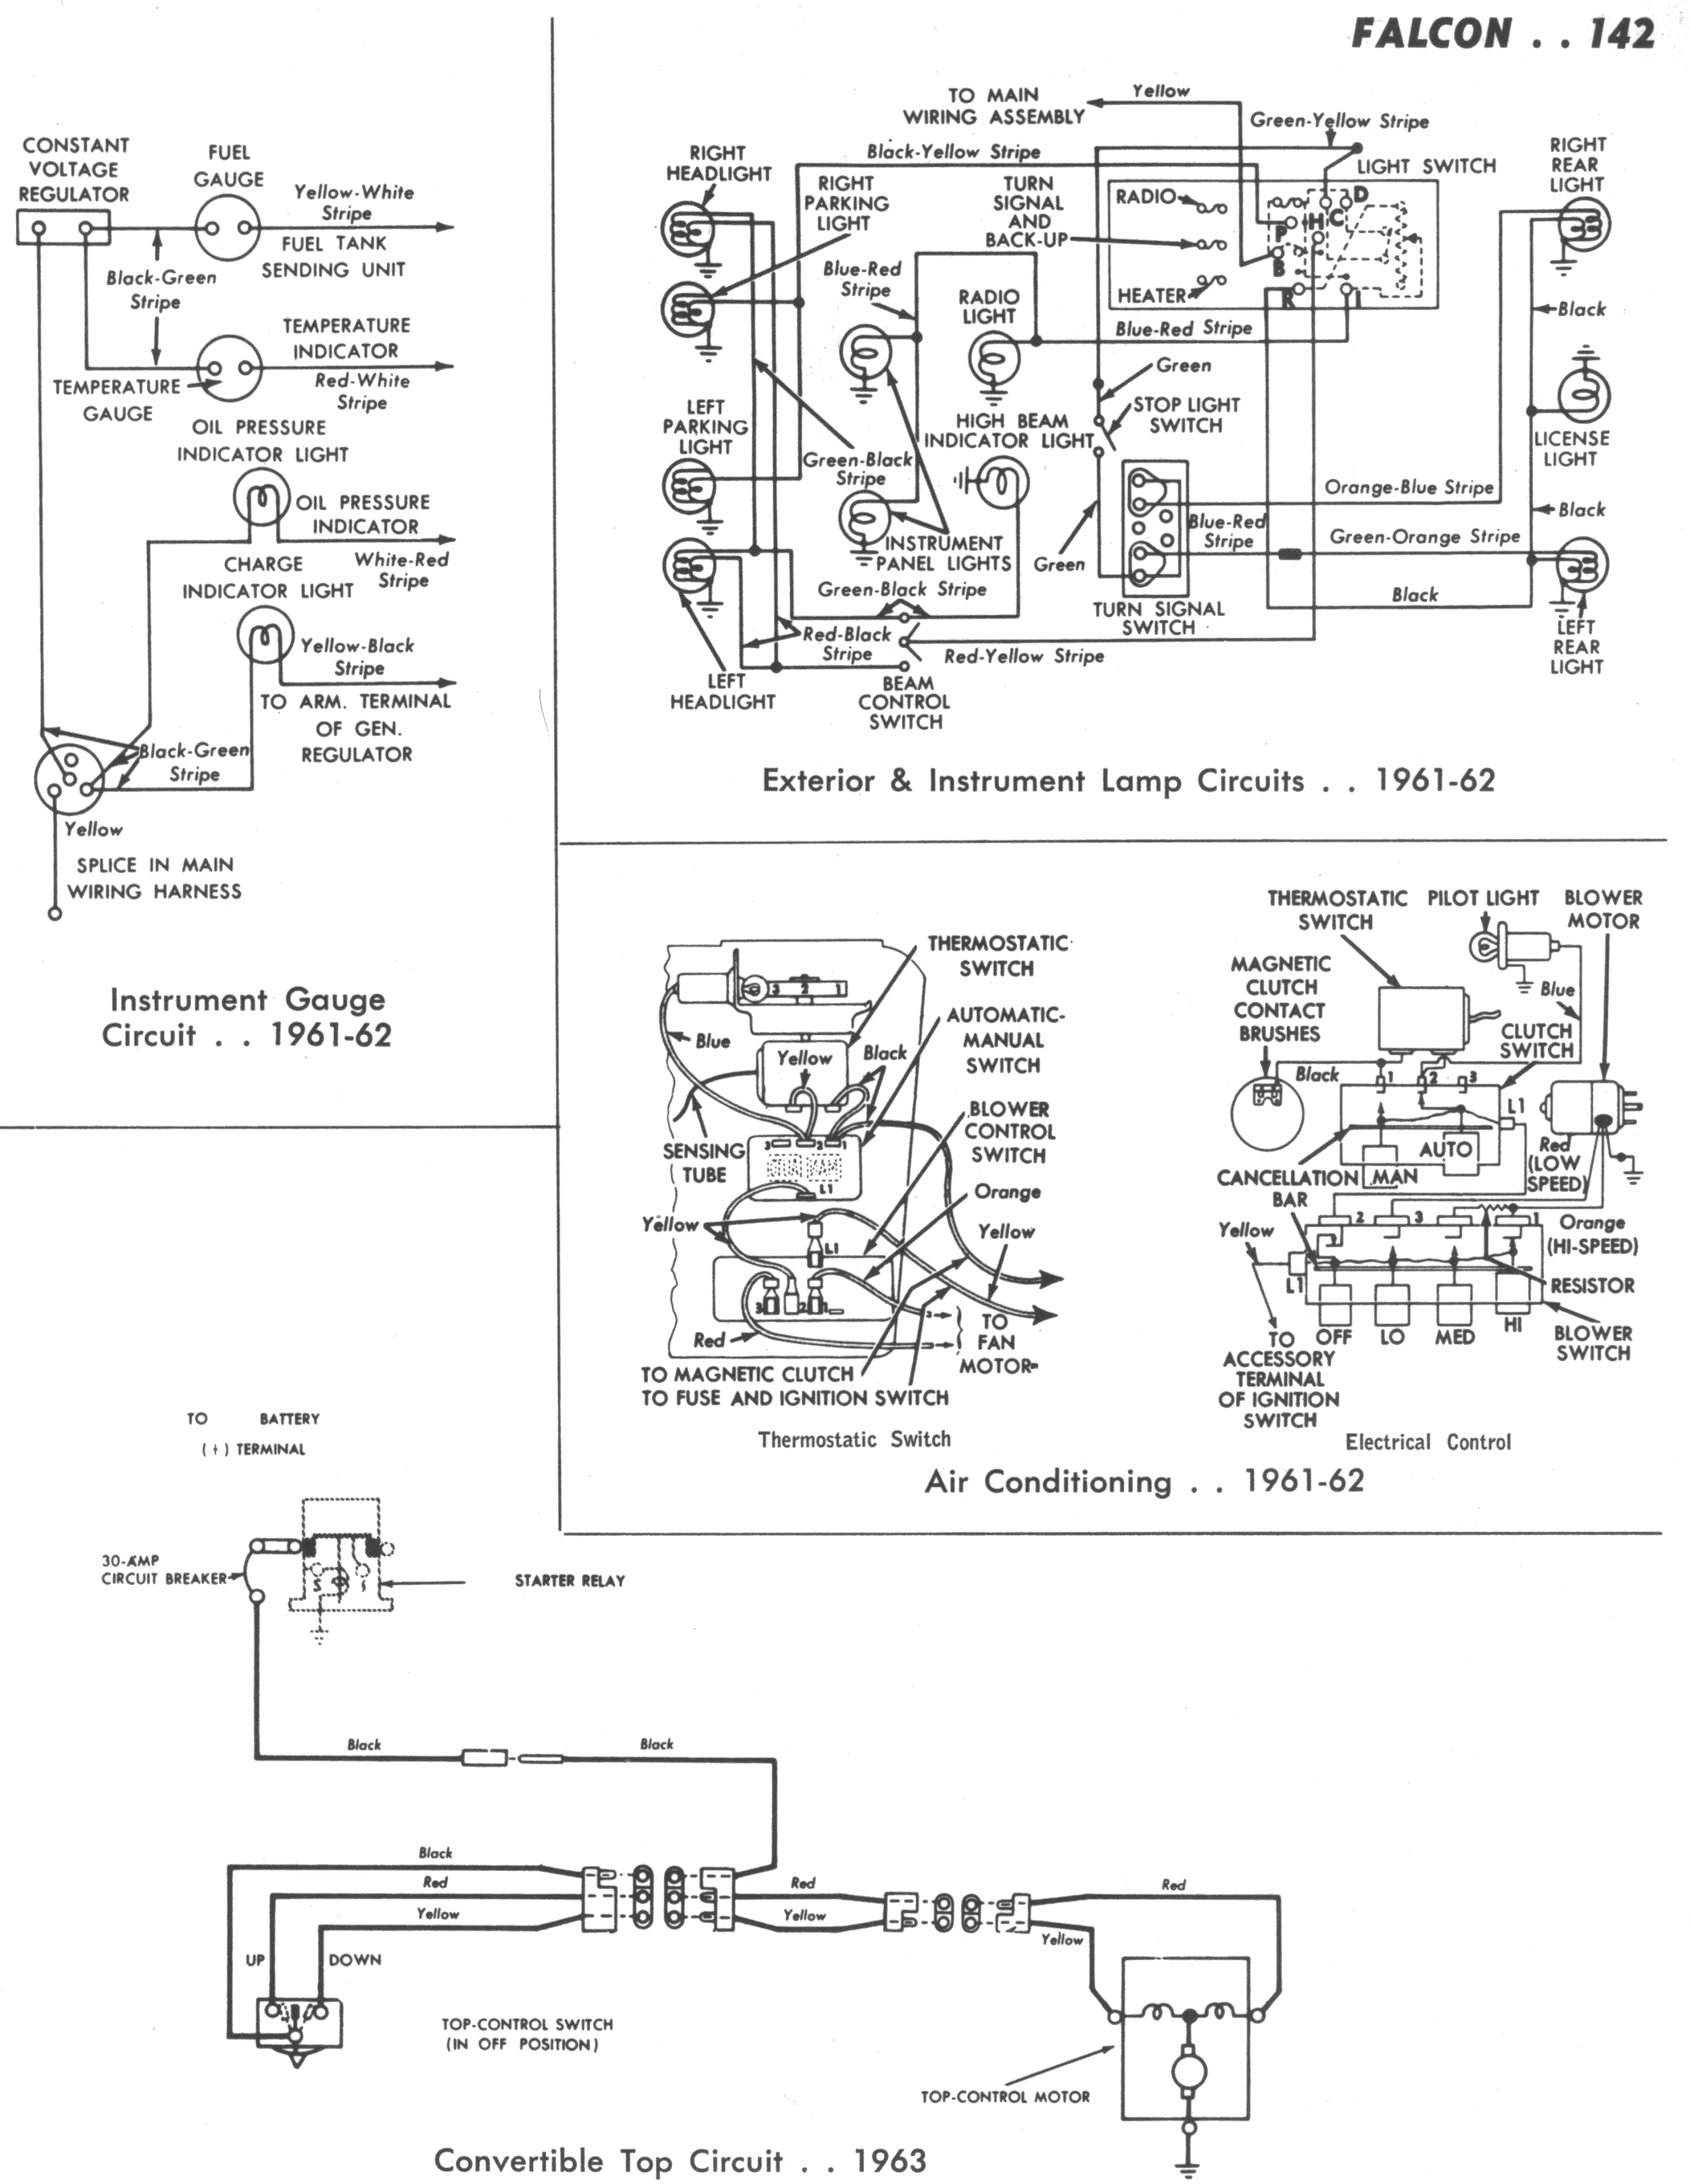 hight resolution of falcon wiring diagrams 2001 gmc tail light wiring diagram tail light wiring diagram 1964